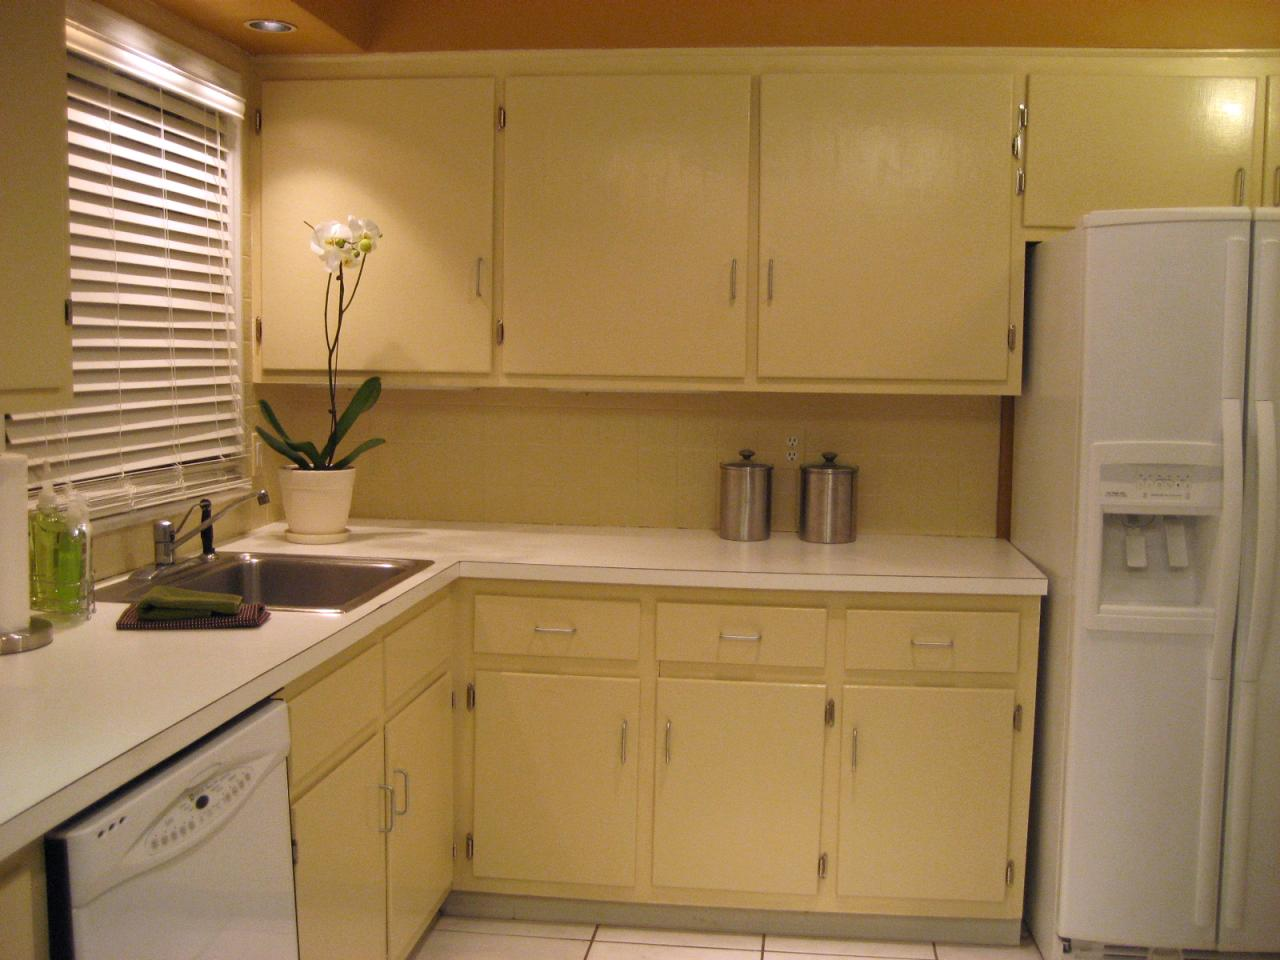 How to paint kitchen cabinets hgtv Revamp old kitchen cabinets